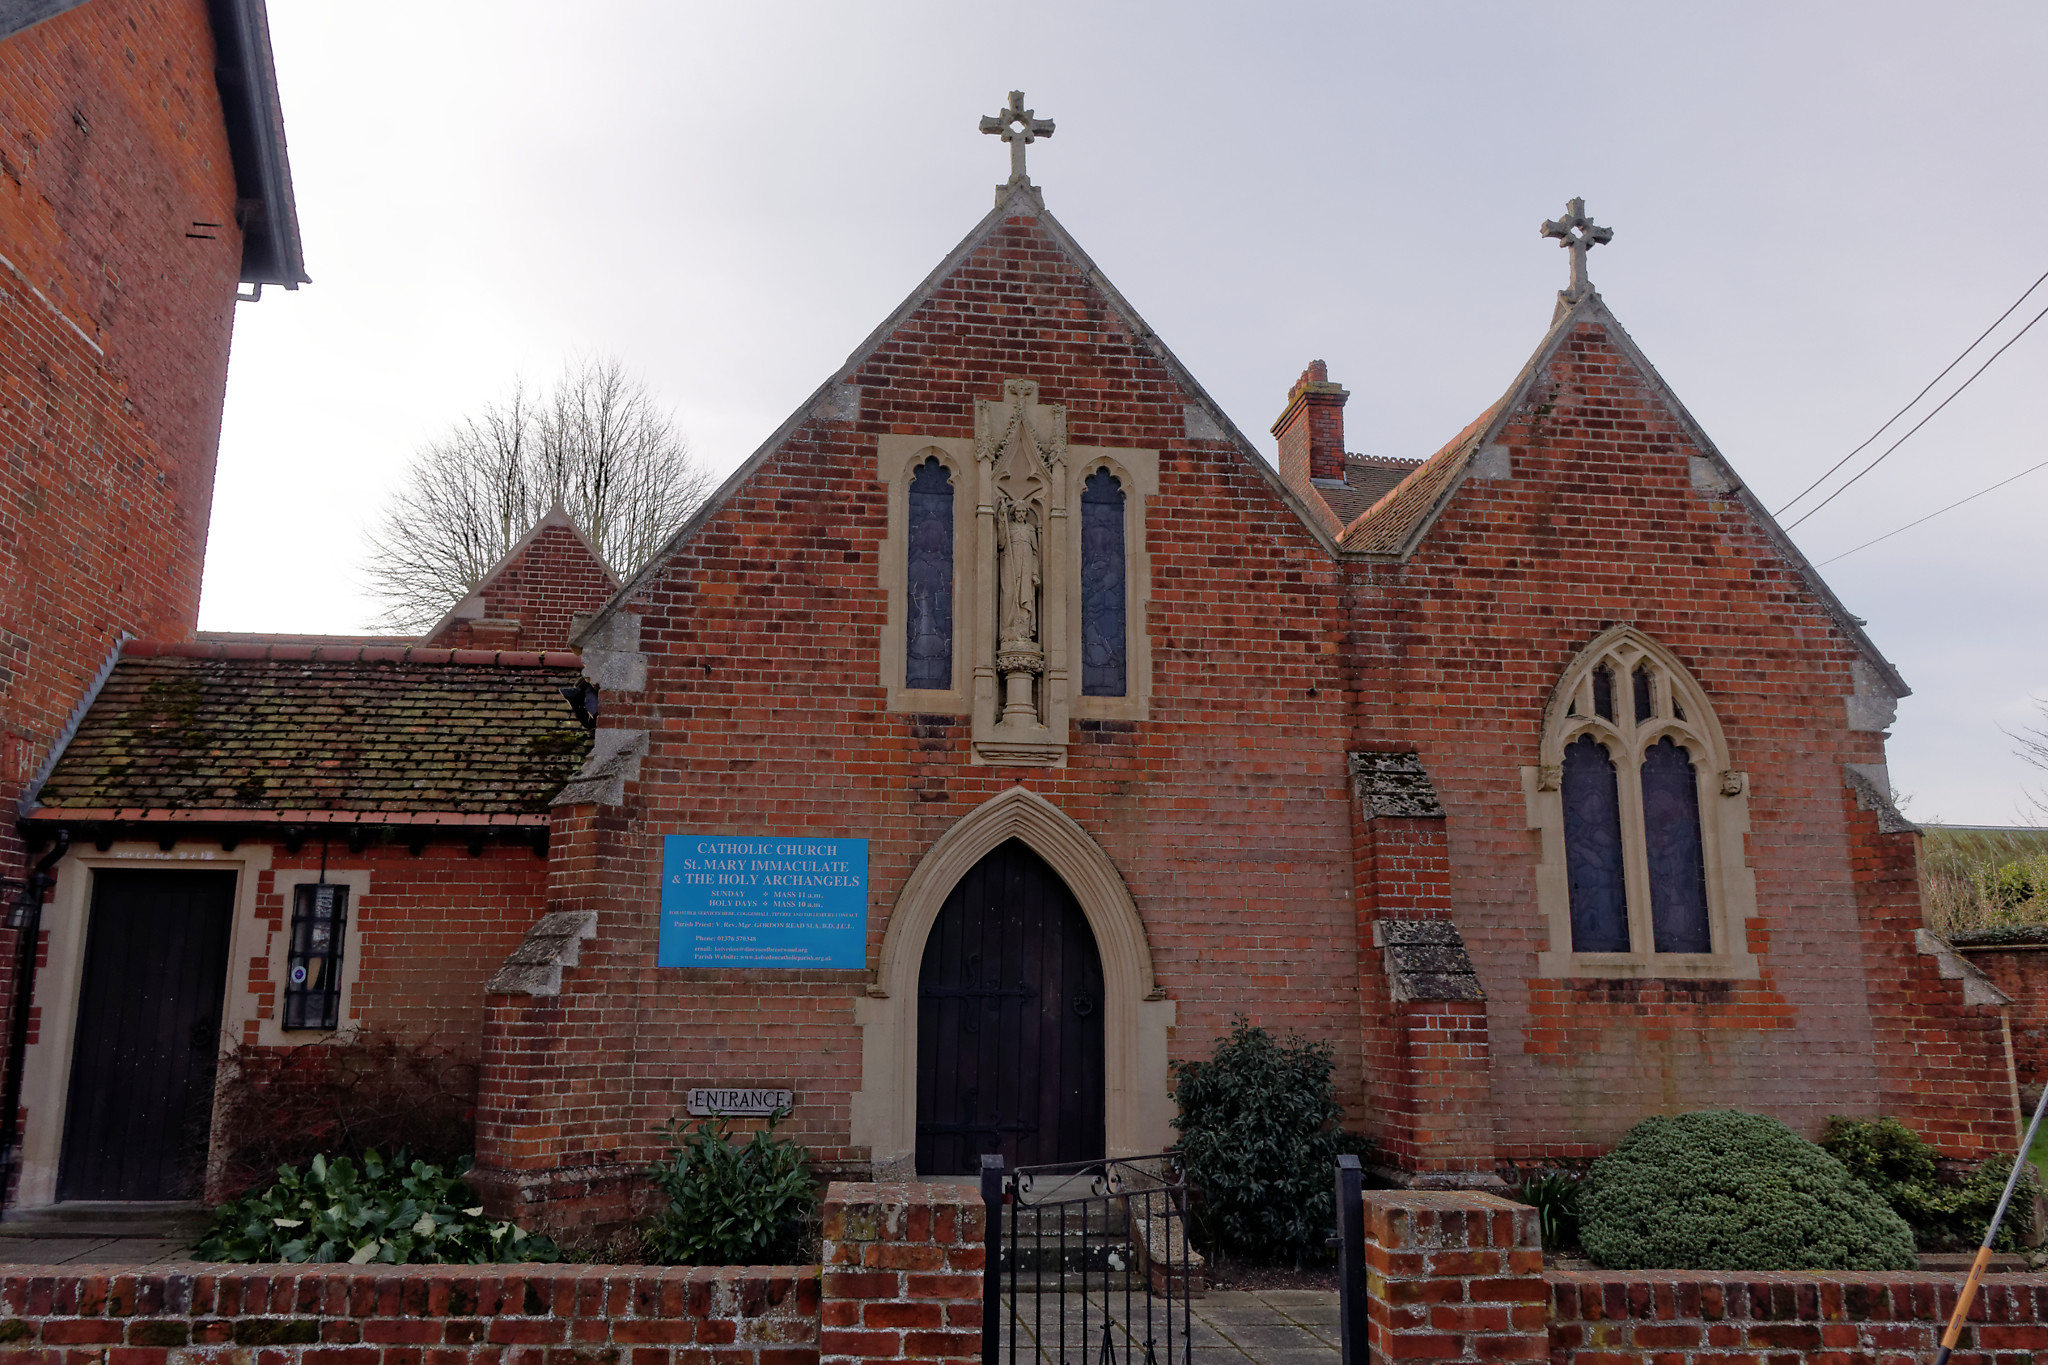 Kelvedon - St Mary Immaculate